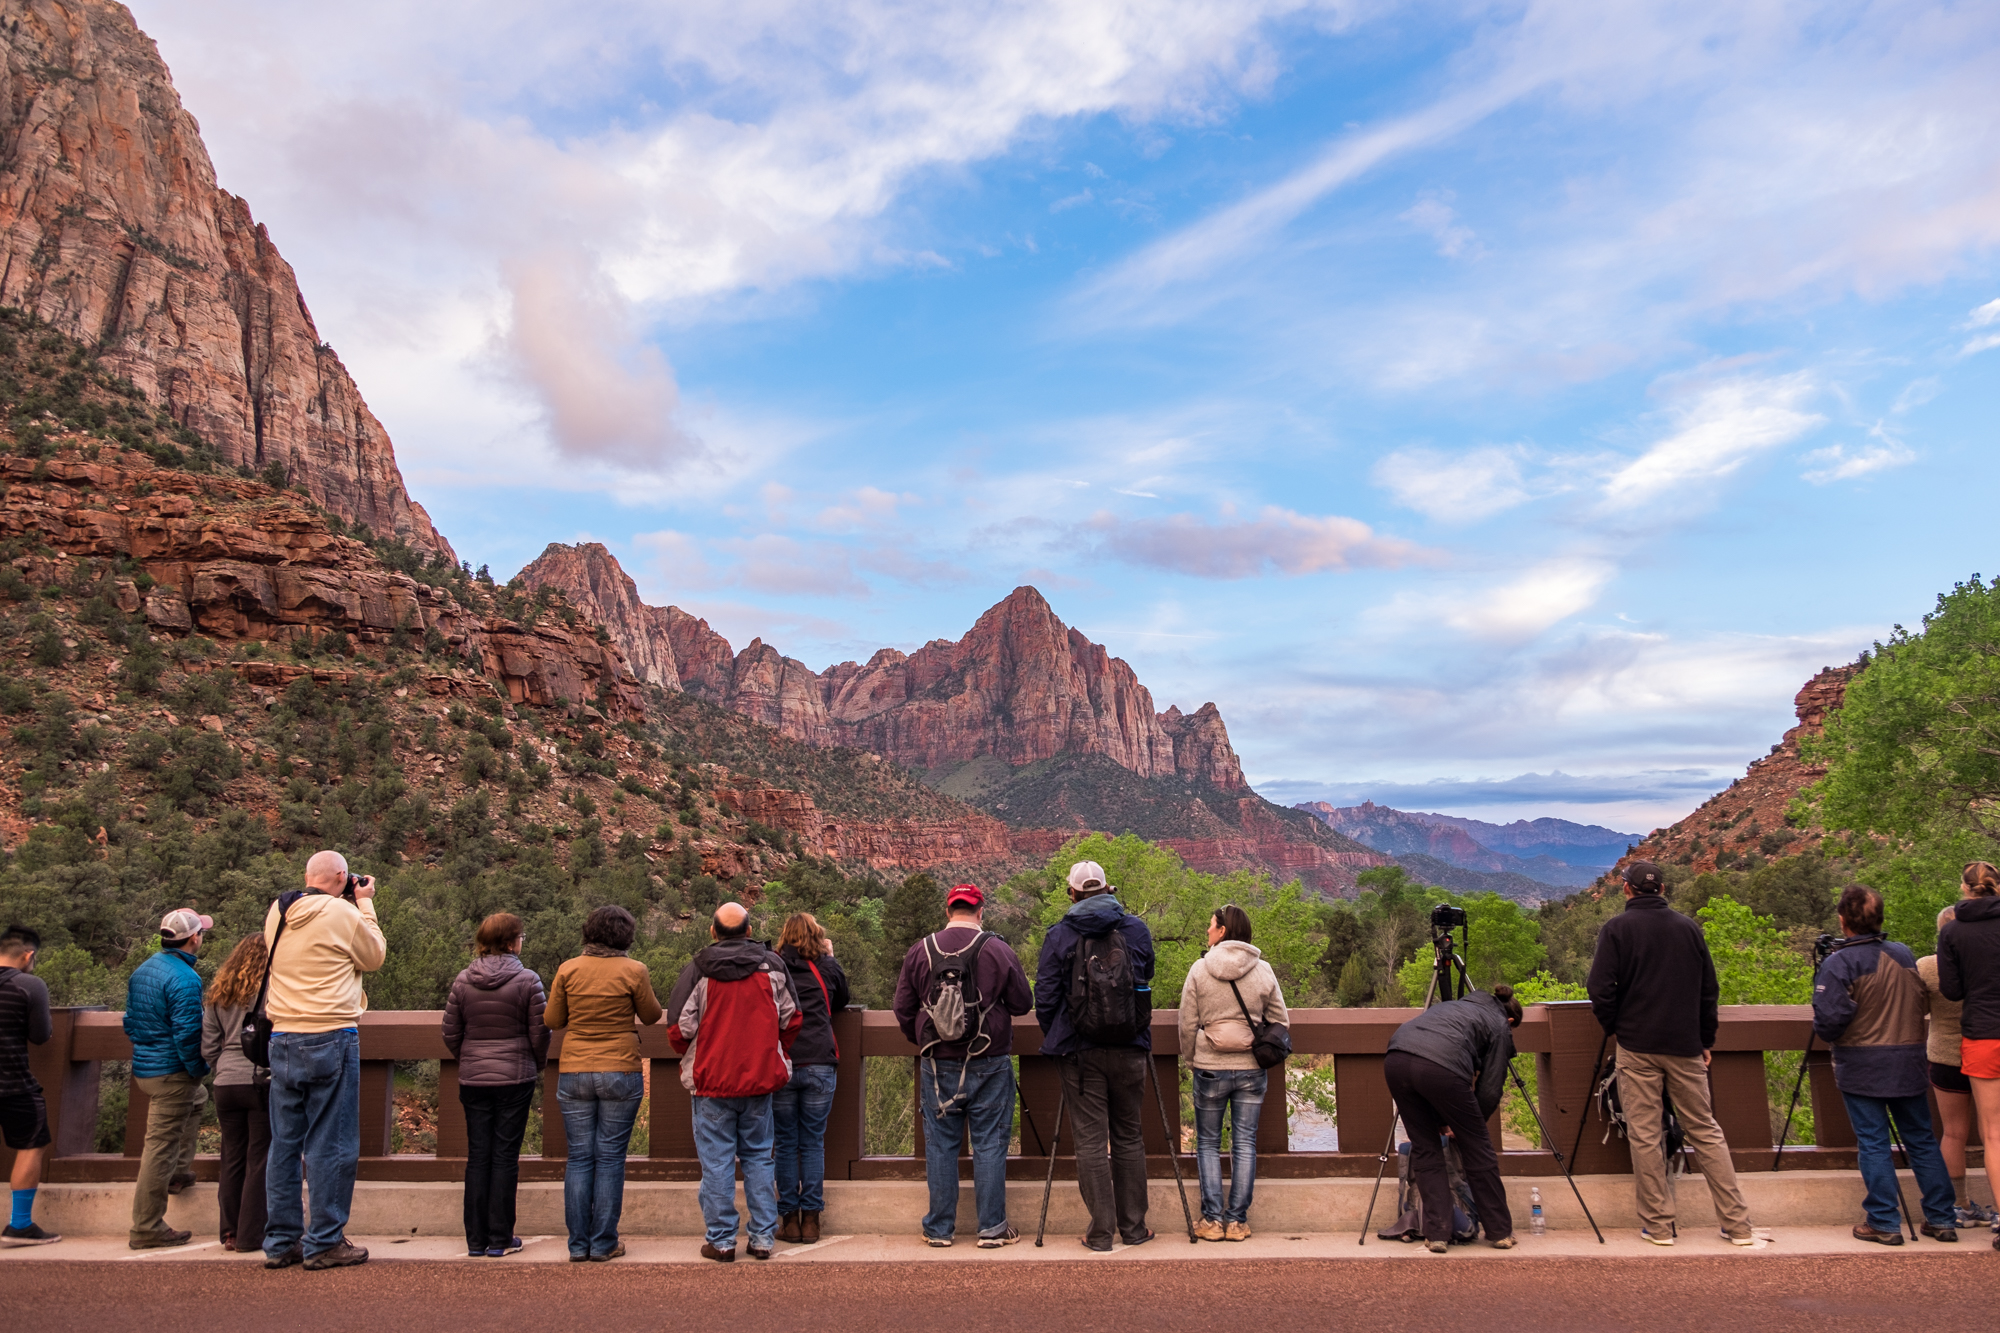 Photographers line up to photograph the Watchman at sunset. Can you spot Jonny? He nabbed the best spot on the bridge!